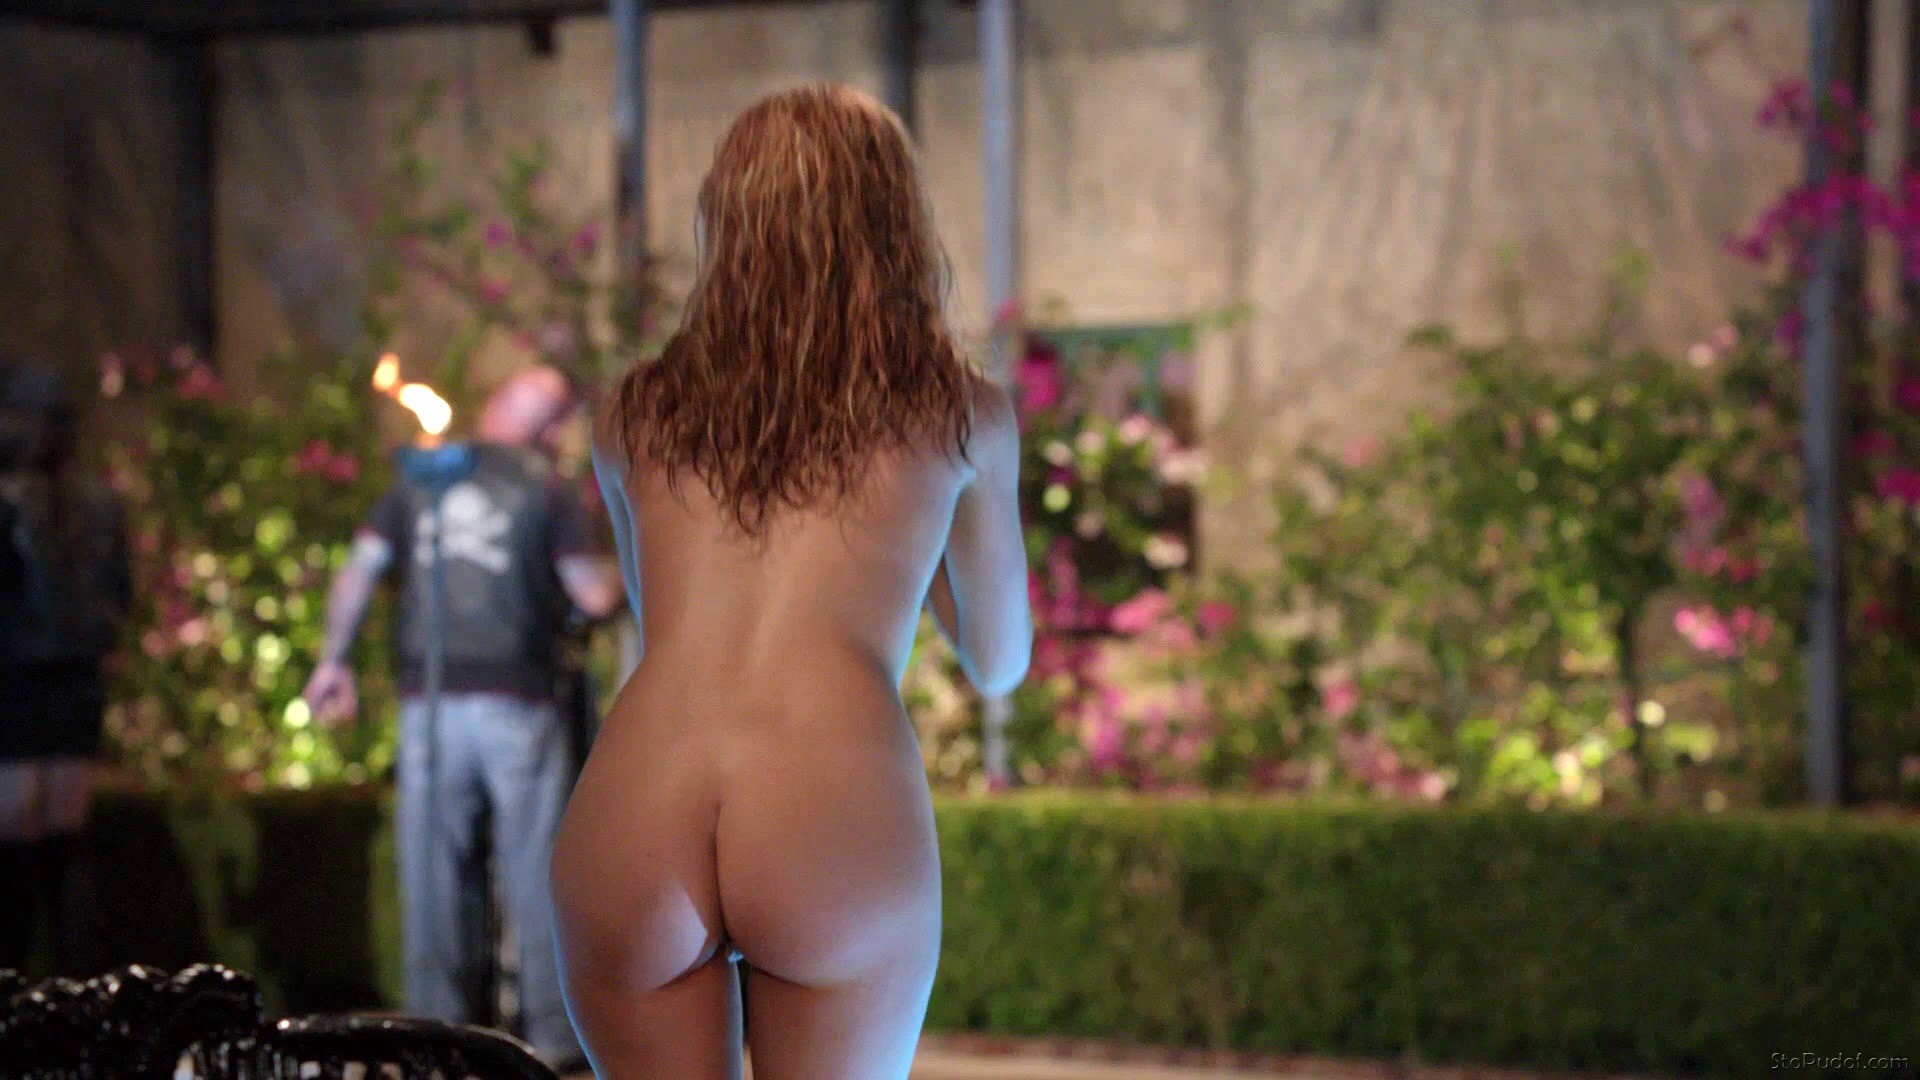 i want to see the Maggie Grace nude photos - UkPhotoSafari